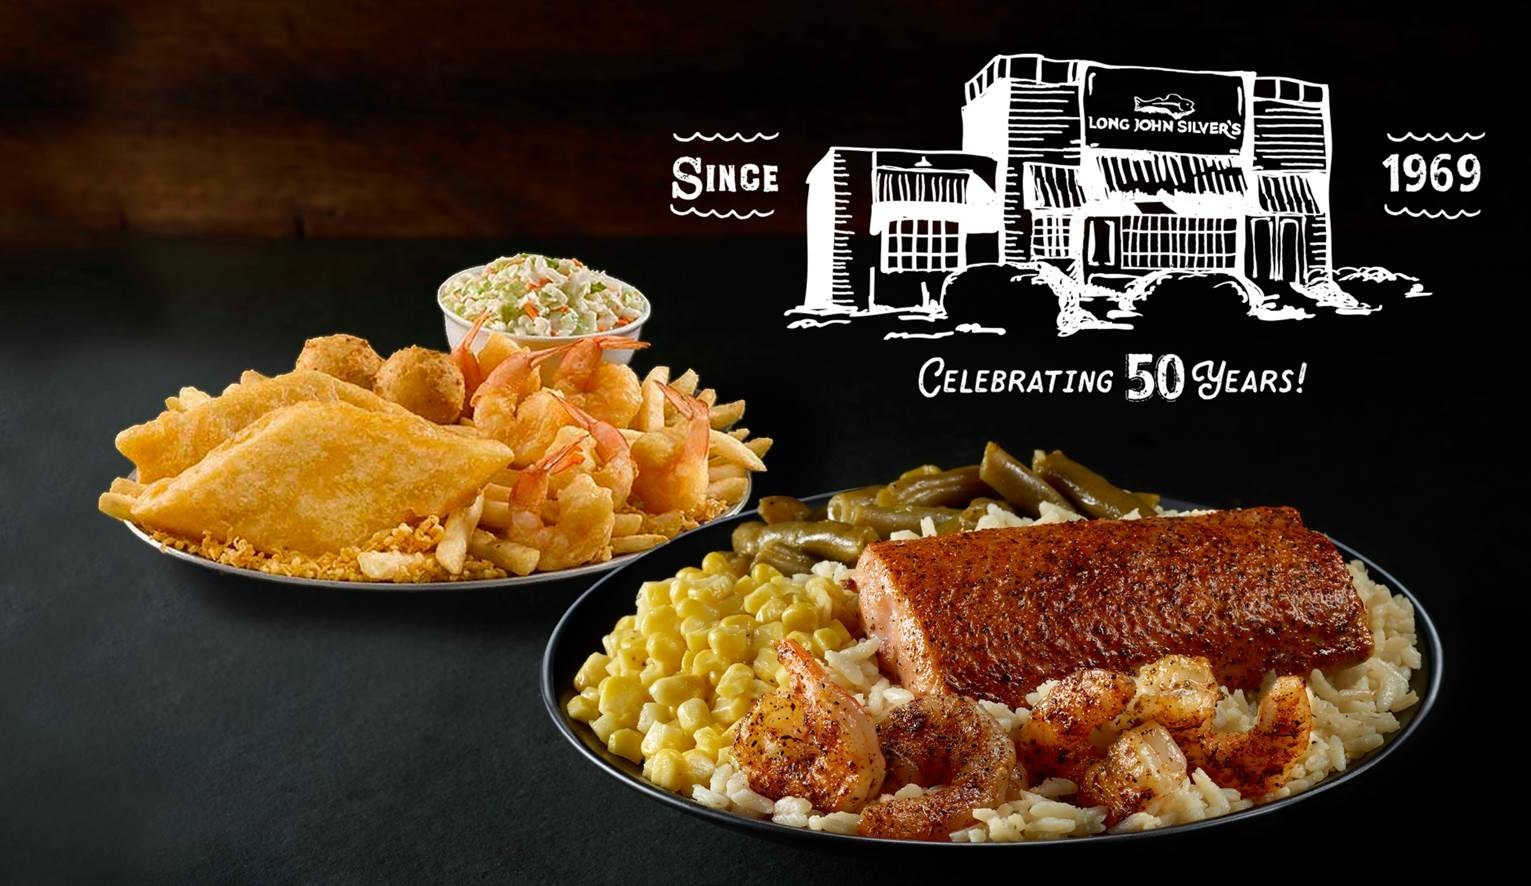 Long John Silvers launches $7.99 All-You-Can-Eat Special to Celebrate 50th Anniversary